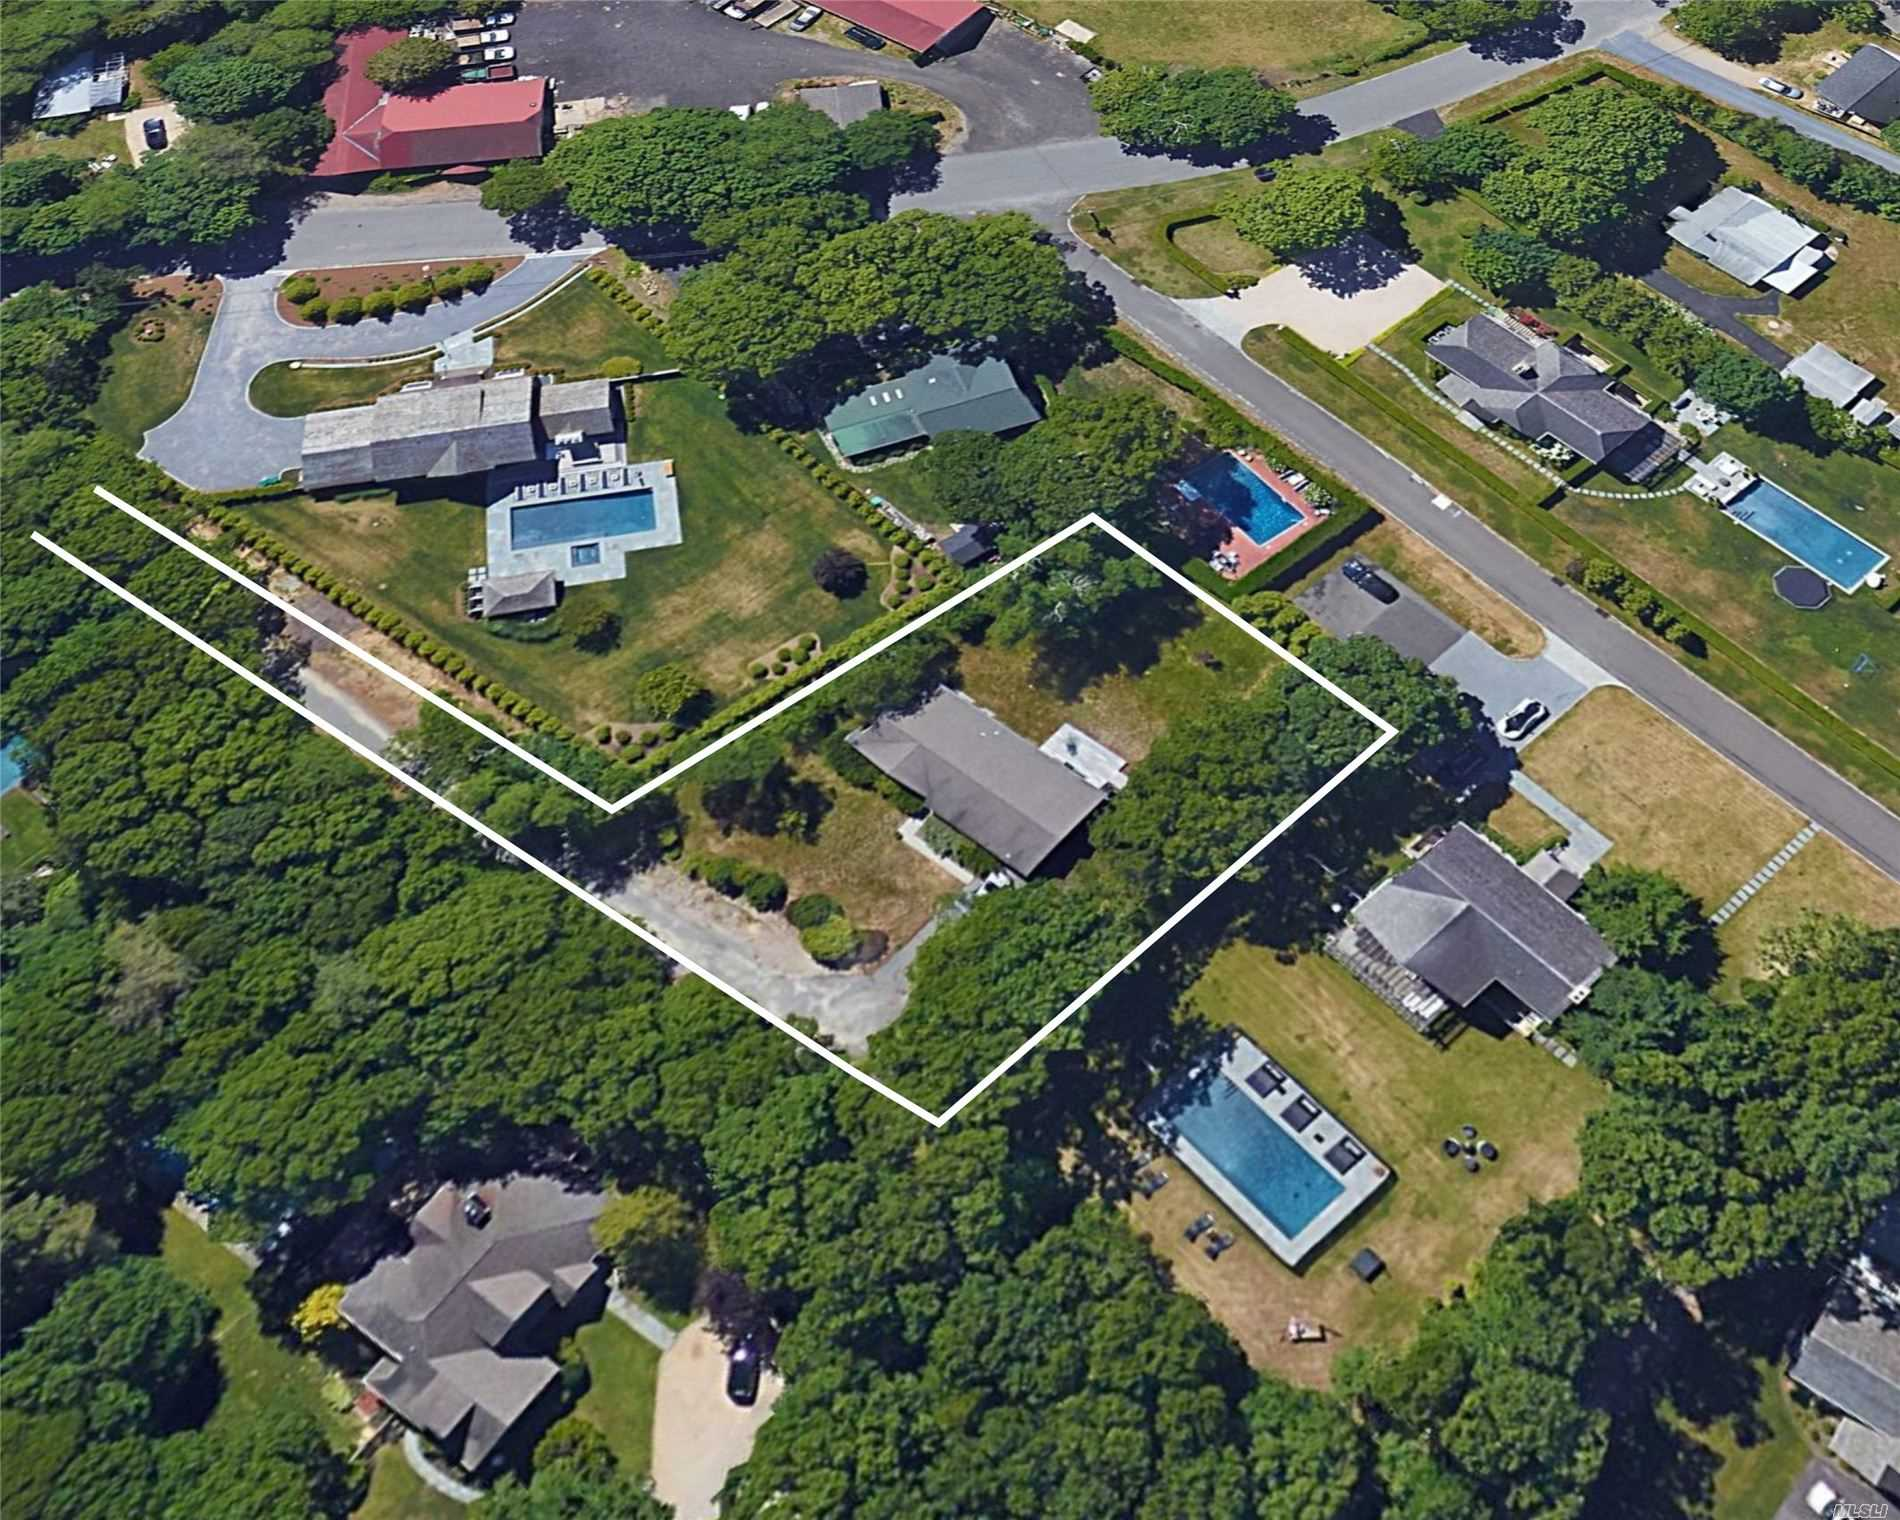 178 Norris Ln - Bridgehampton, New York